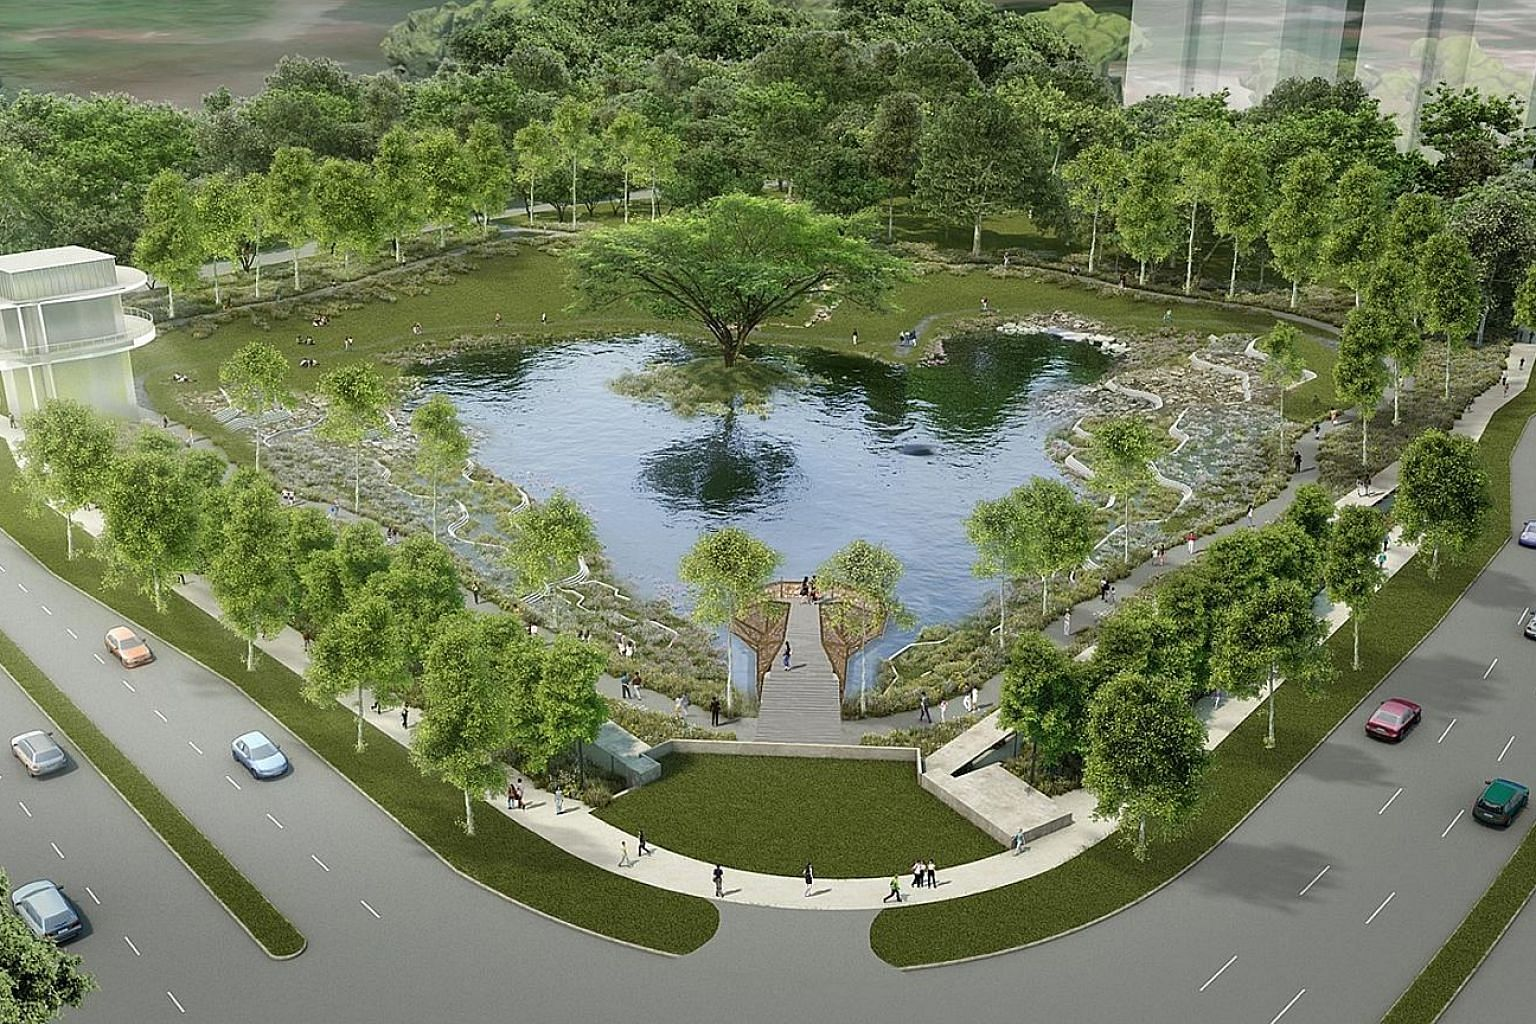 An artist's impression of Alkaff Lake in Bidadari estate. In dry weather, its grassy banks will make a perfect communal space for residents of the area. But the artificial lake will be designed as more than just a pretty spot to hang out at. It is al